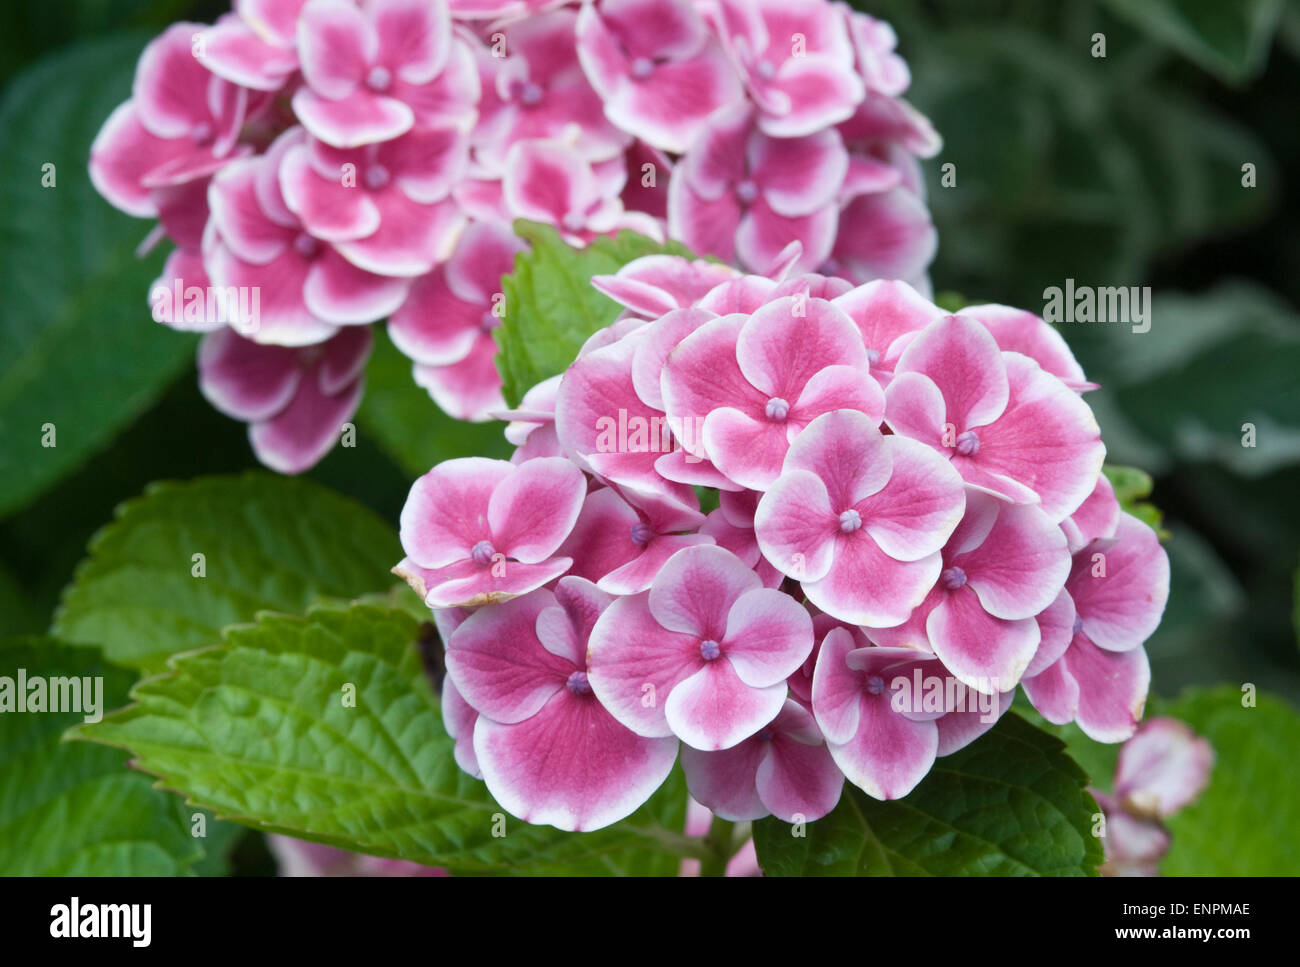 Hydrangea macrophylla 'Buttons 'n Bows' - Stock Image